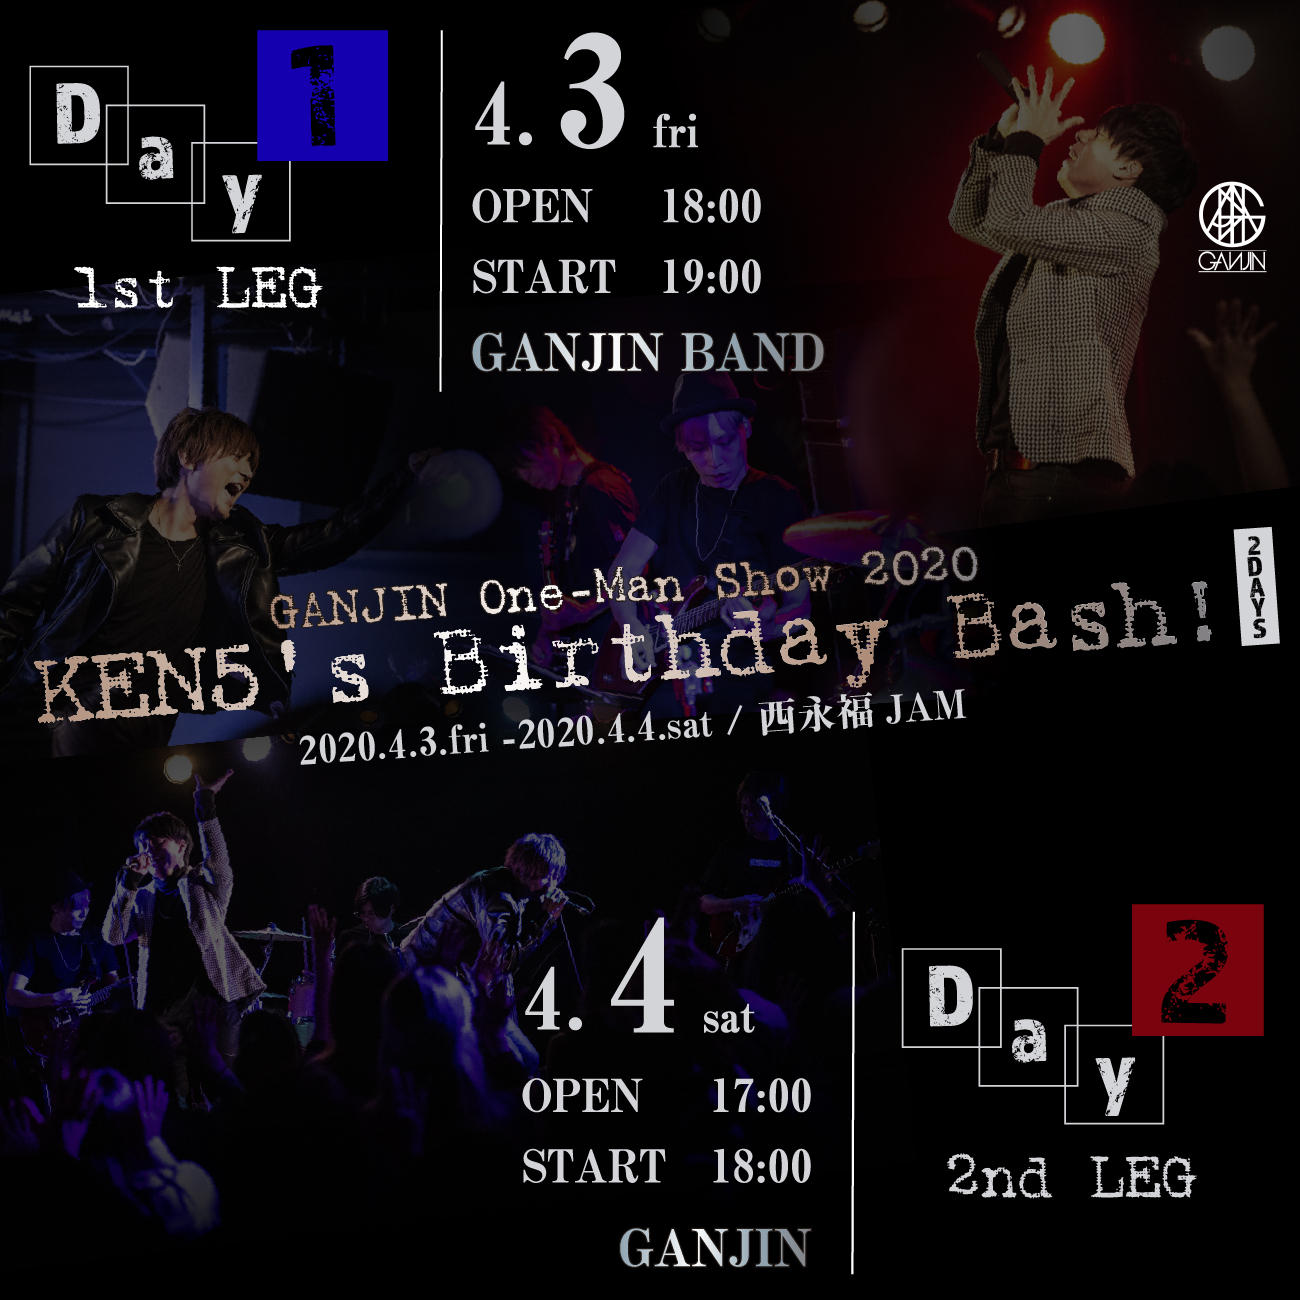 GANJIN One-Man Show 2020 KEN5's Birthday Bash!!